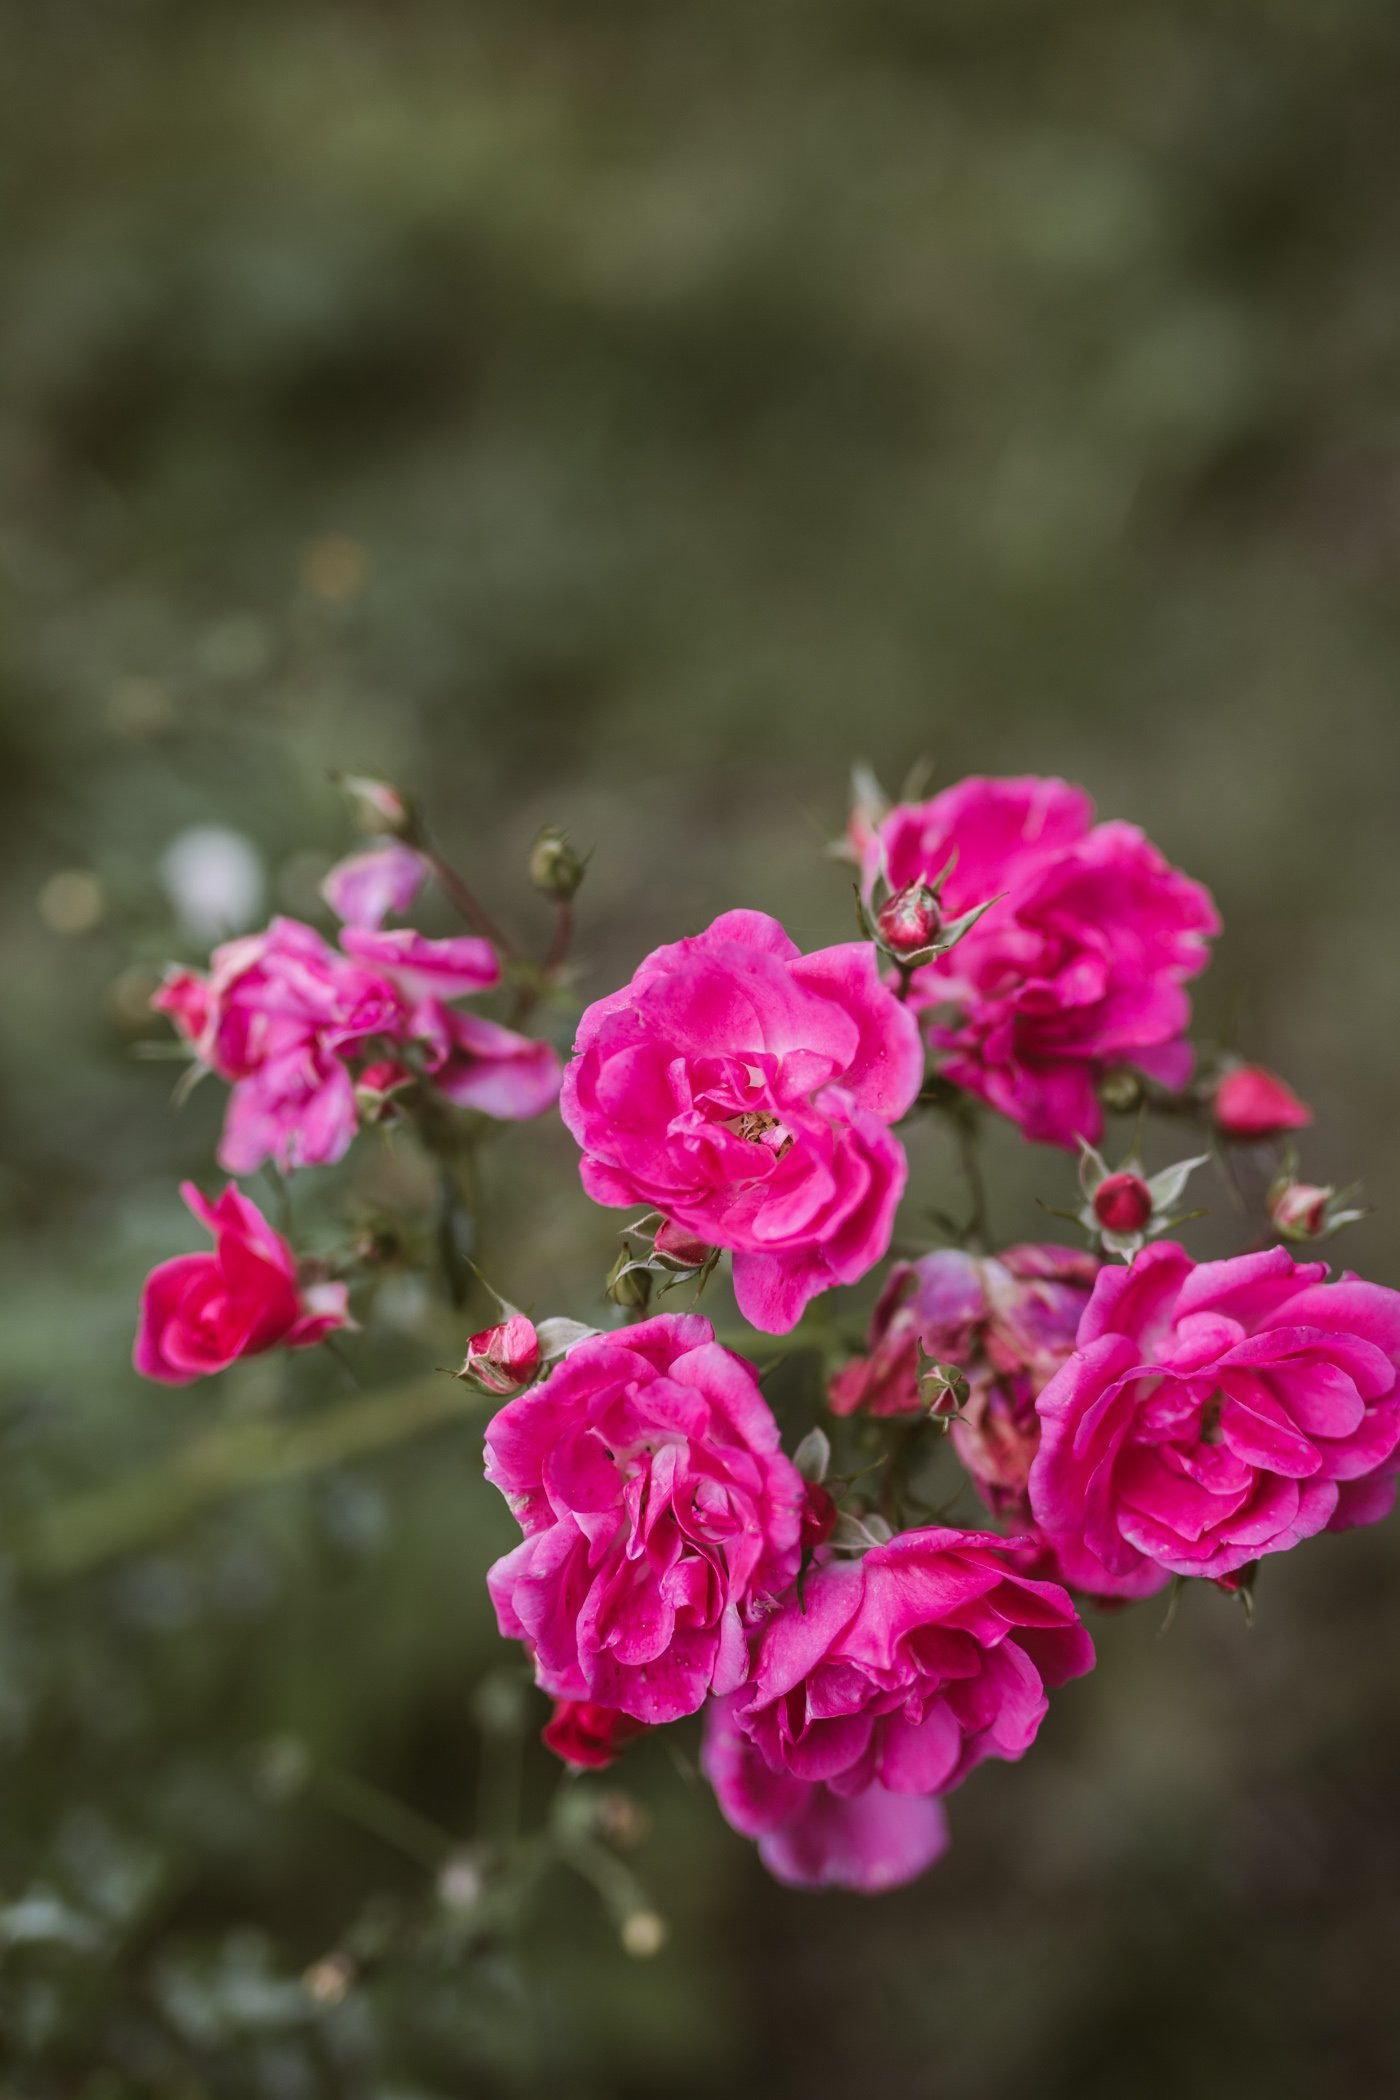 Roses in the garden of Der Daberer Biohotel